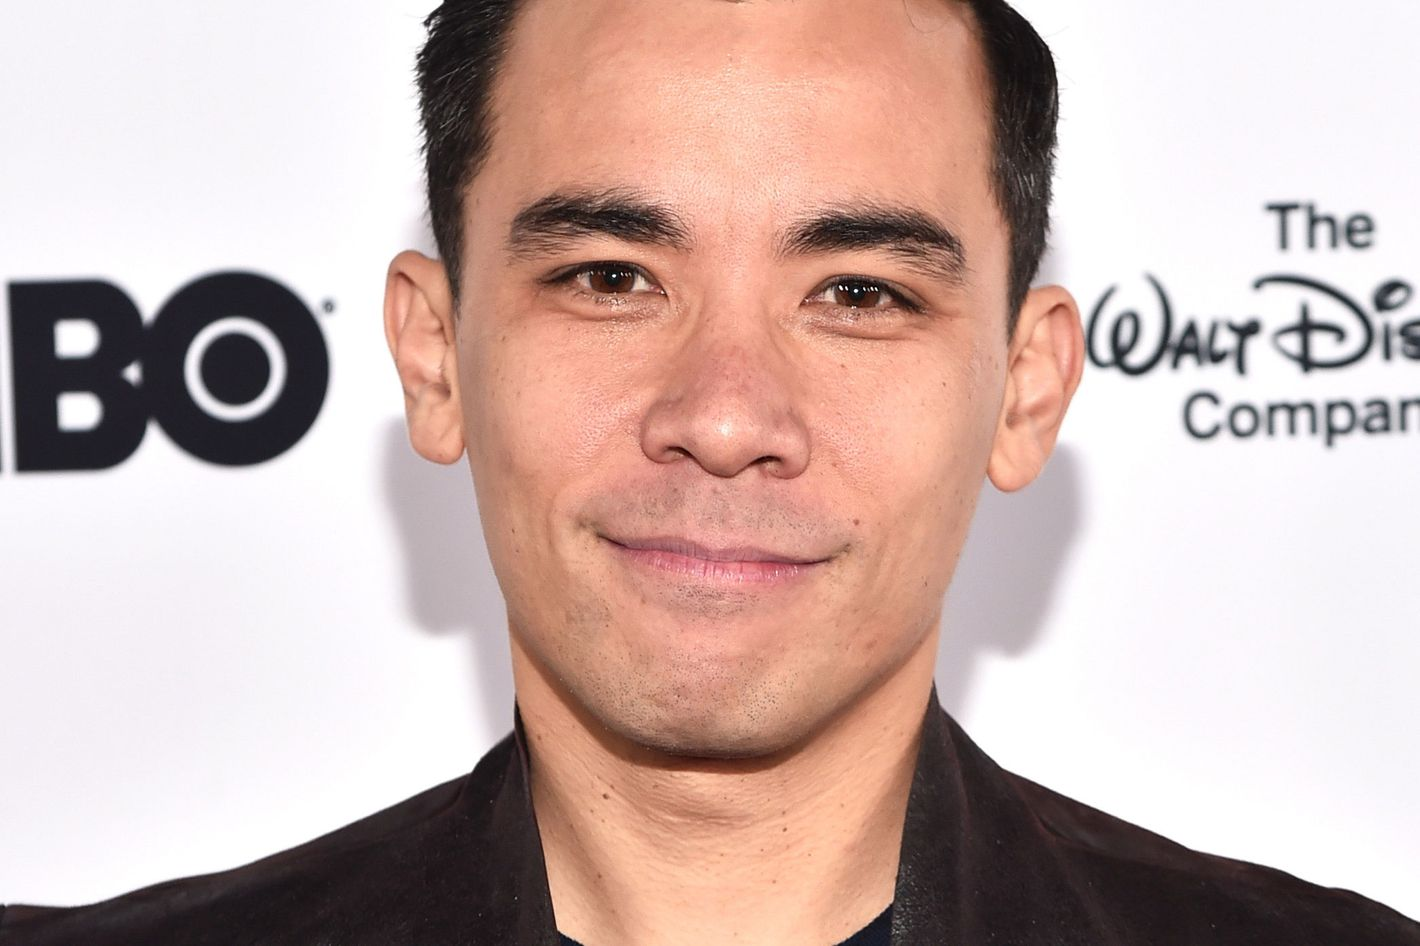 conrad ricamora snapchatconrad ricamora imdb, conrad ricamora singing, conrad ricamora википедия, conrad ricamora and boyfriend, conrad ricamora instagram, conrad ricamora twitter, conrad ricamora facebook, conrad ricamora tumblr, conrad ricamora age, conrad ricamora the king and i, conrad ricamora biography, conrad ricamora preston sadleir, conrad ricamora here lies love, conrad ricamora filipino, conrad ricamora ethnicity, conrad ricamora shirtless, conrad ricamora girlfriend, conrad ricamora snapchat, conrad ricamora interview, conrad ricamora sexuality